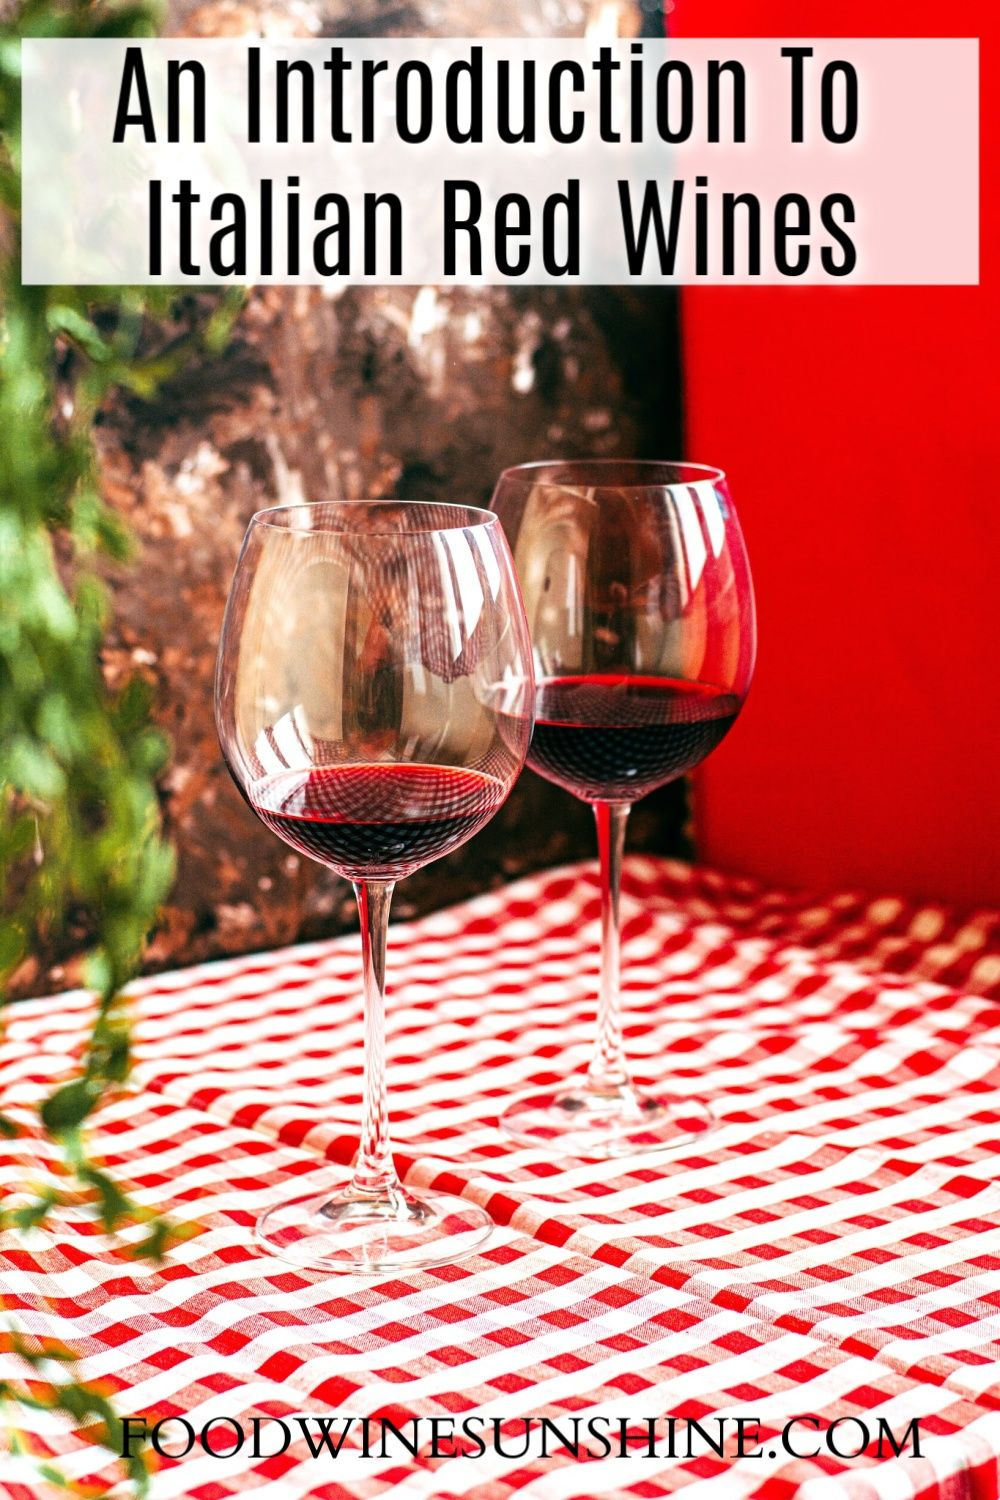 An Introduction To Italian Red Wines In 2020 Red Wine Wine Recipes Wines